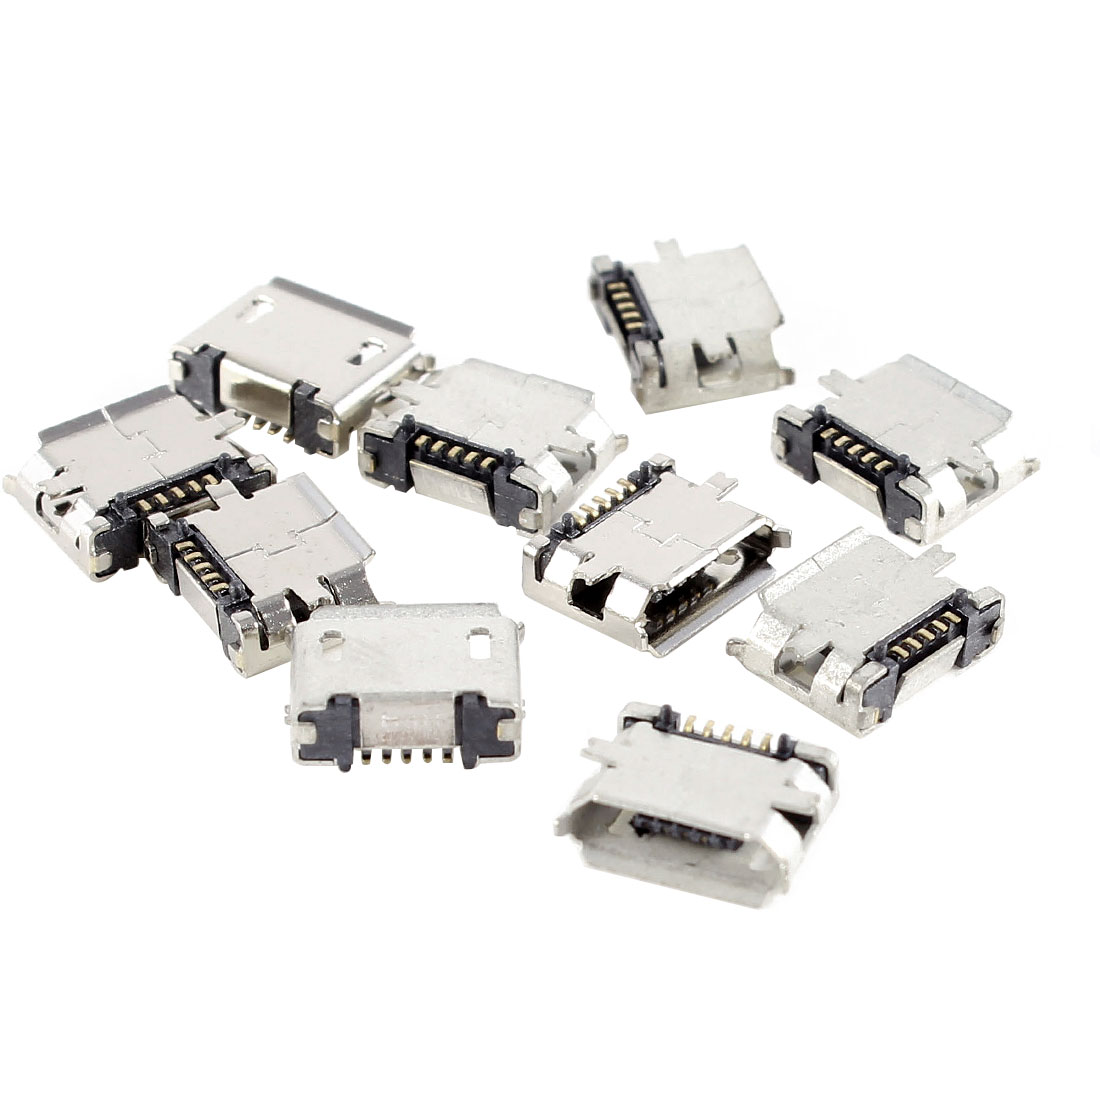 10 Pcs Micro USB Type B Female Socket 180 Degree 5-Pin SMD SMT Solder Connector